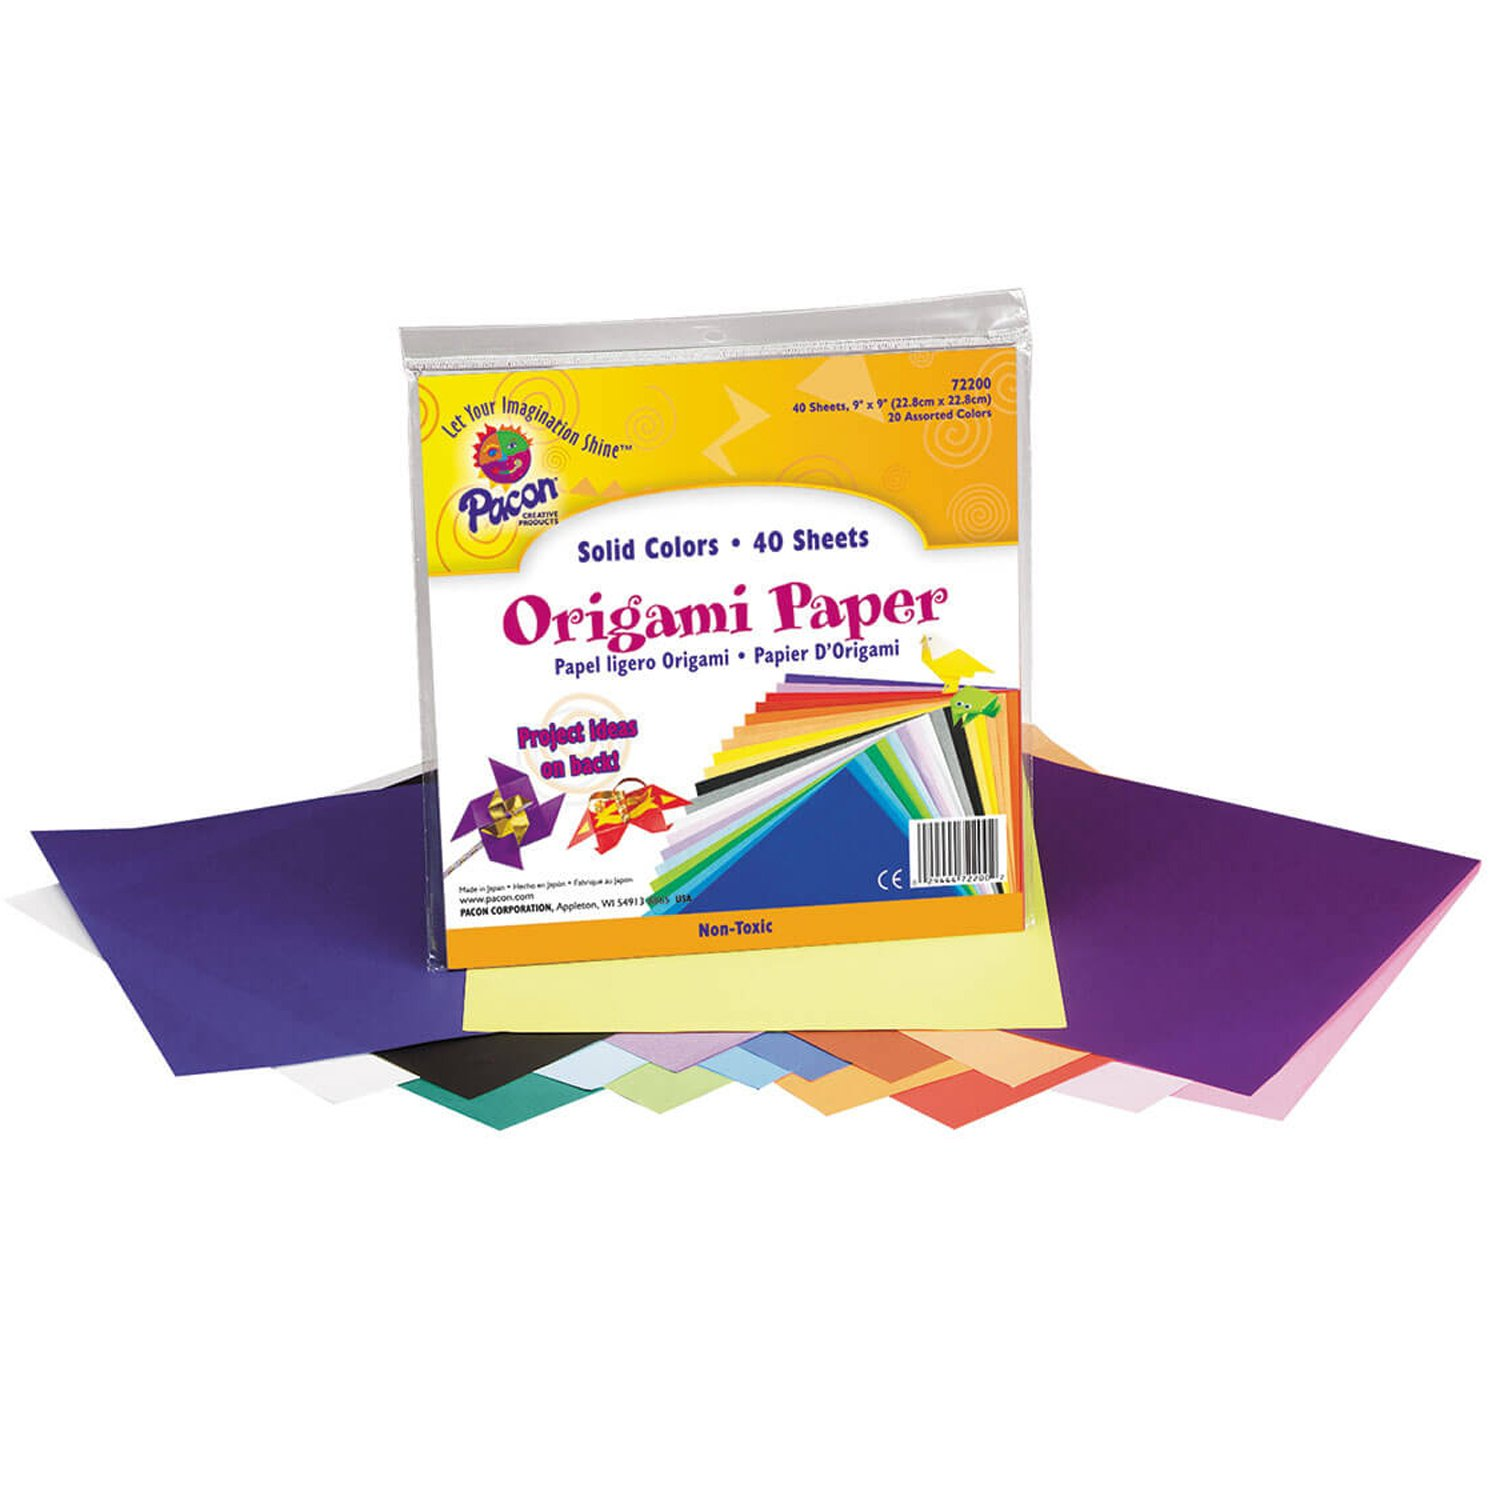 Pacon Origami Lightweight Paper - 9 x 9 inches - Pack of 40 - Assorted Bright Colors PACON CORPORATION 0072200